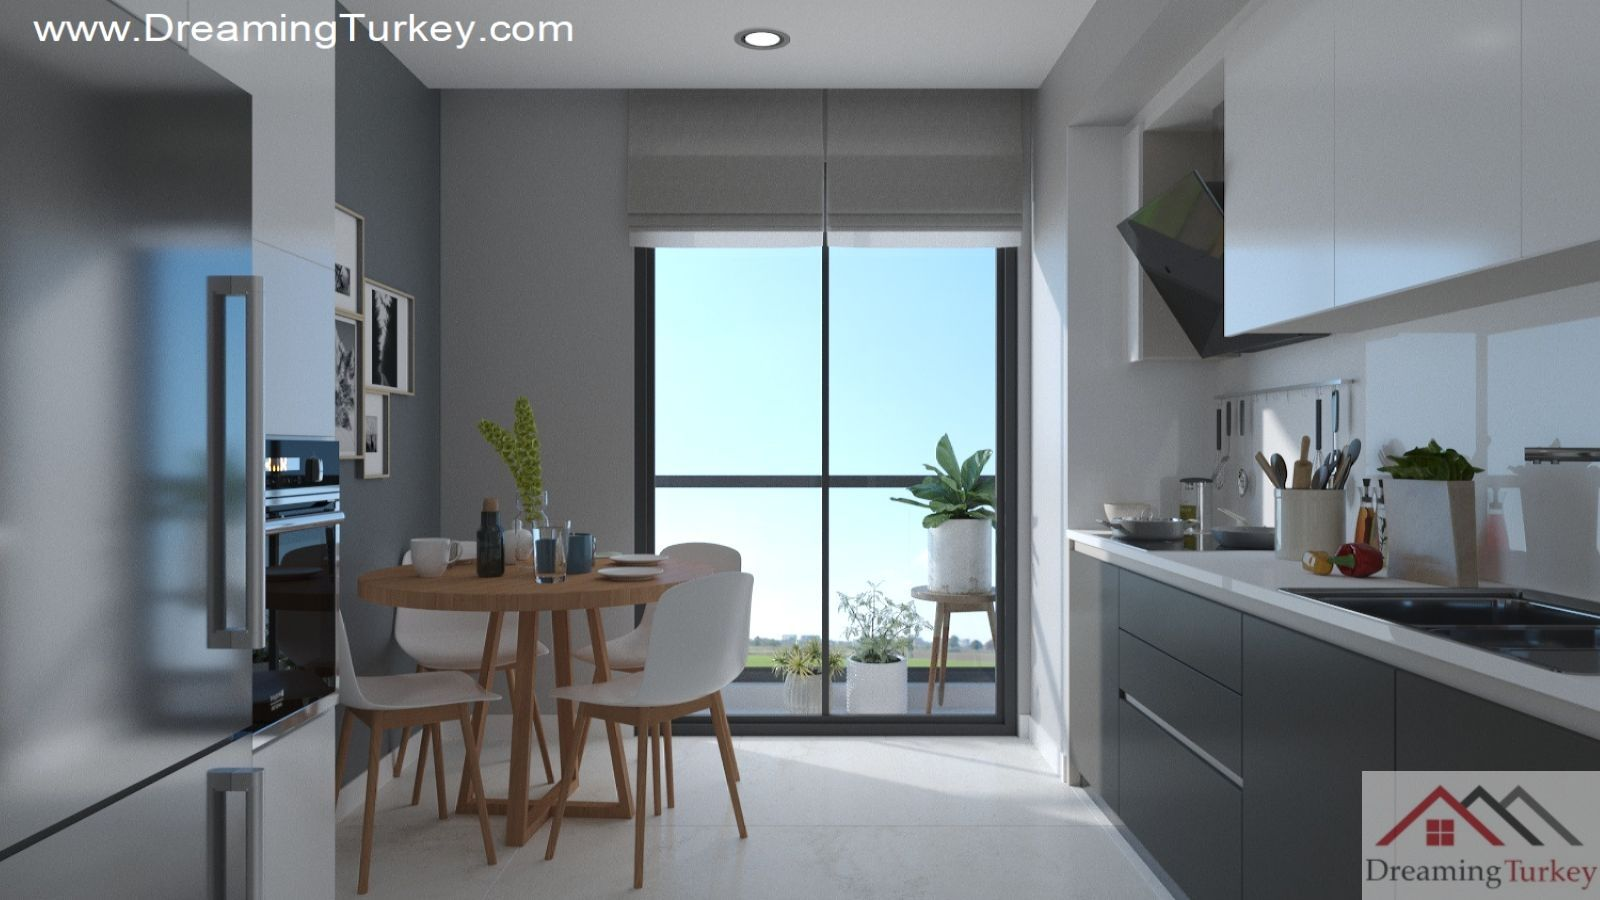 1-Bedroom Apartment Near the Lake in Istanbul